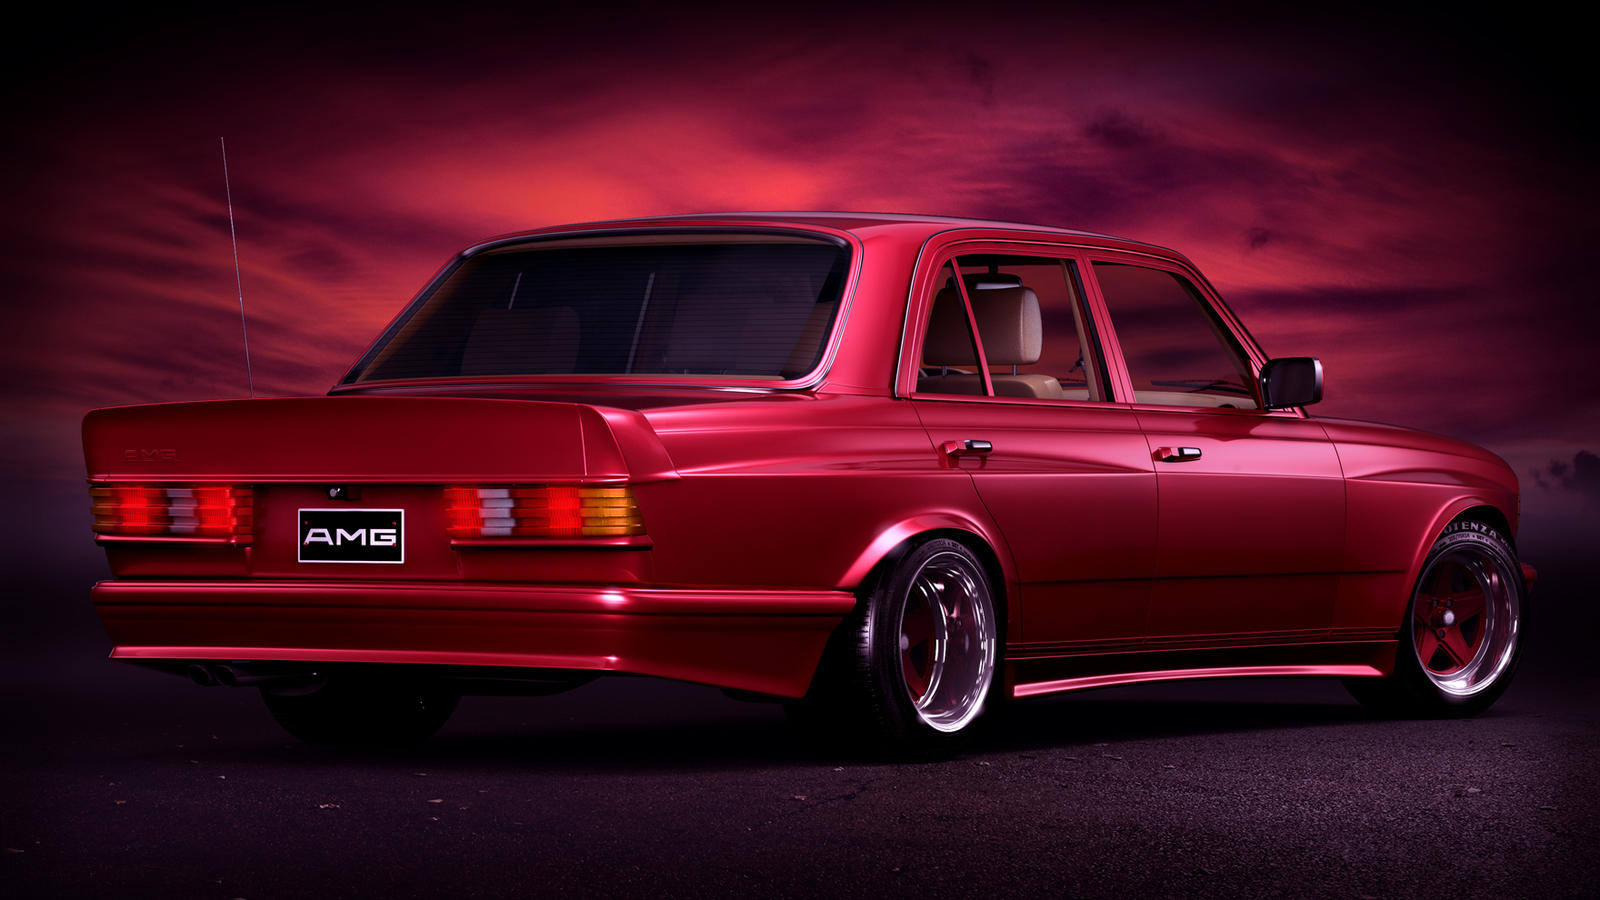 1984 mercedes benz w123 6 0 amg wide body by splicer436 on for Mercedes benz auto body